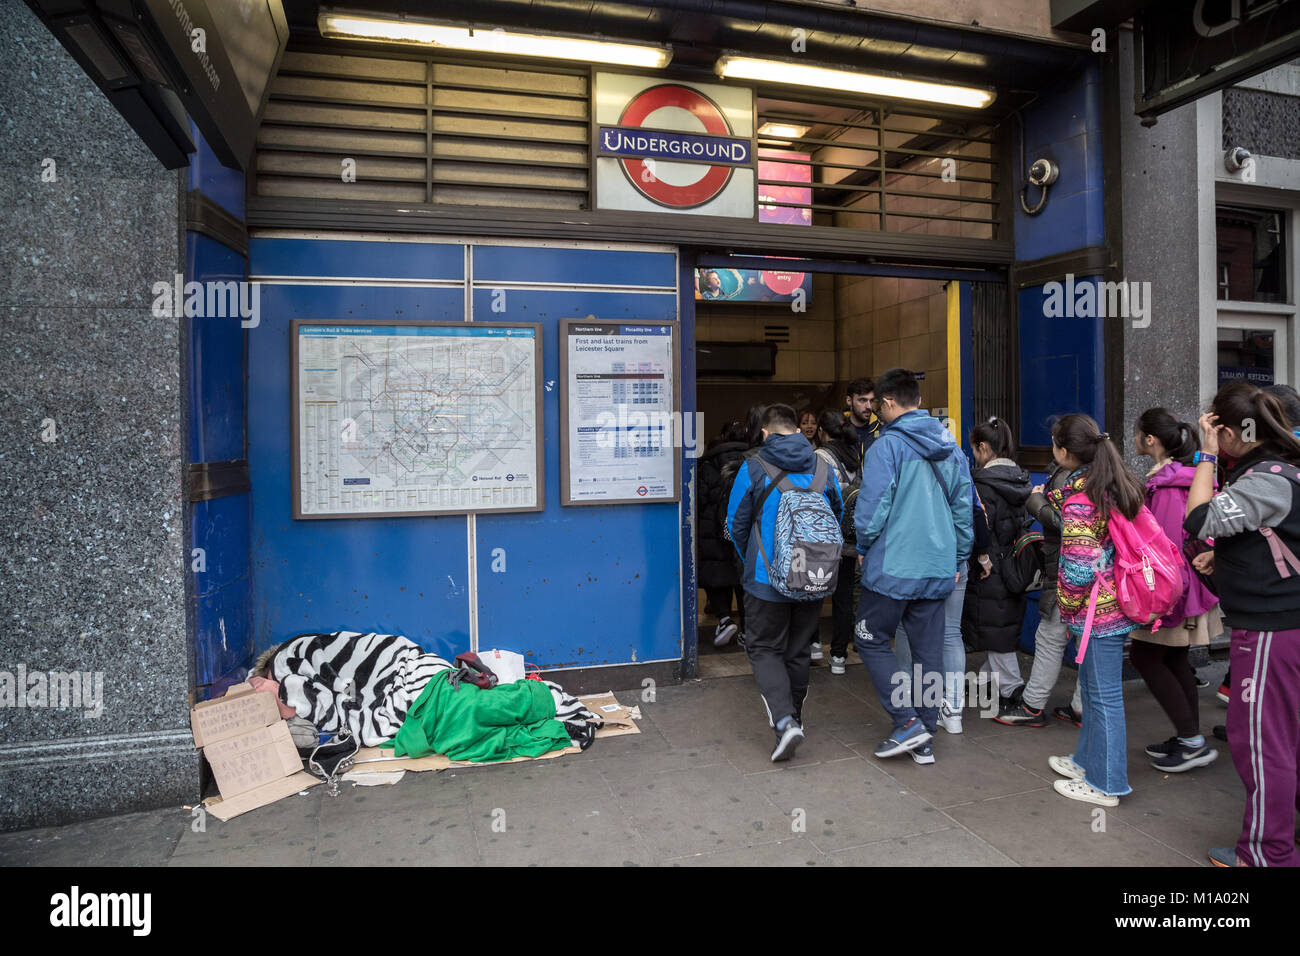 London, UK. 28th Jan, 2018. A rough sleeper during the day outside Leicester Square underground station. Credit: - Stock Image